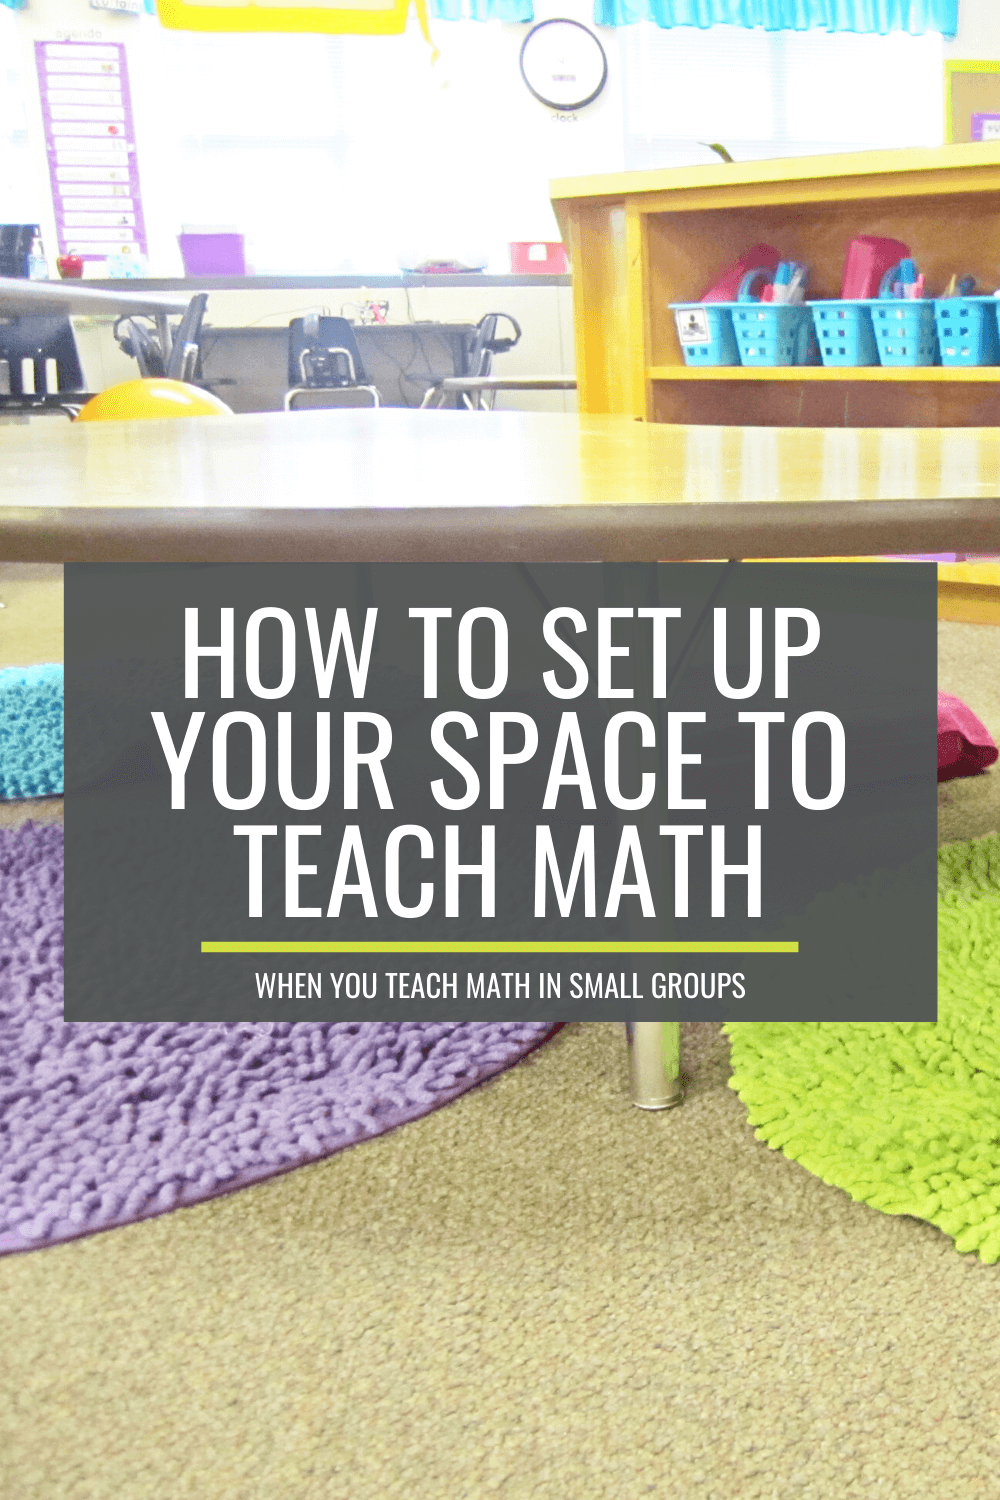 How to Set Up Your Space to Teach Math in Small Groups